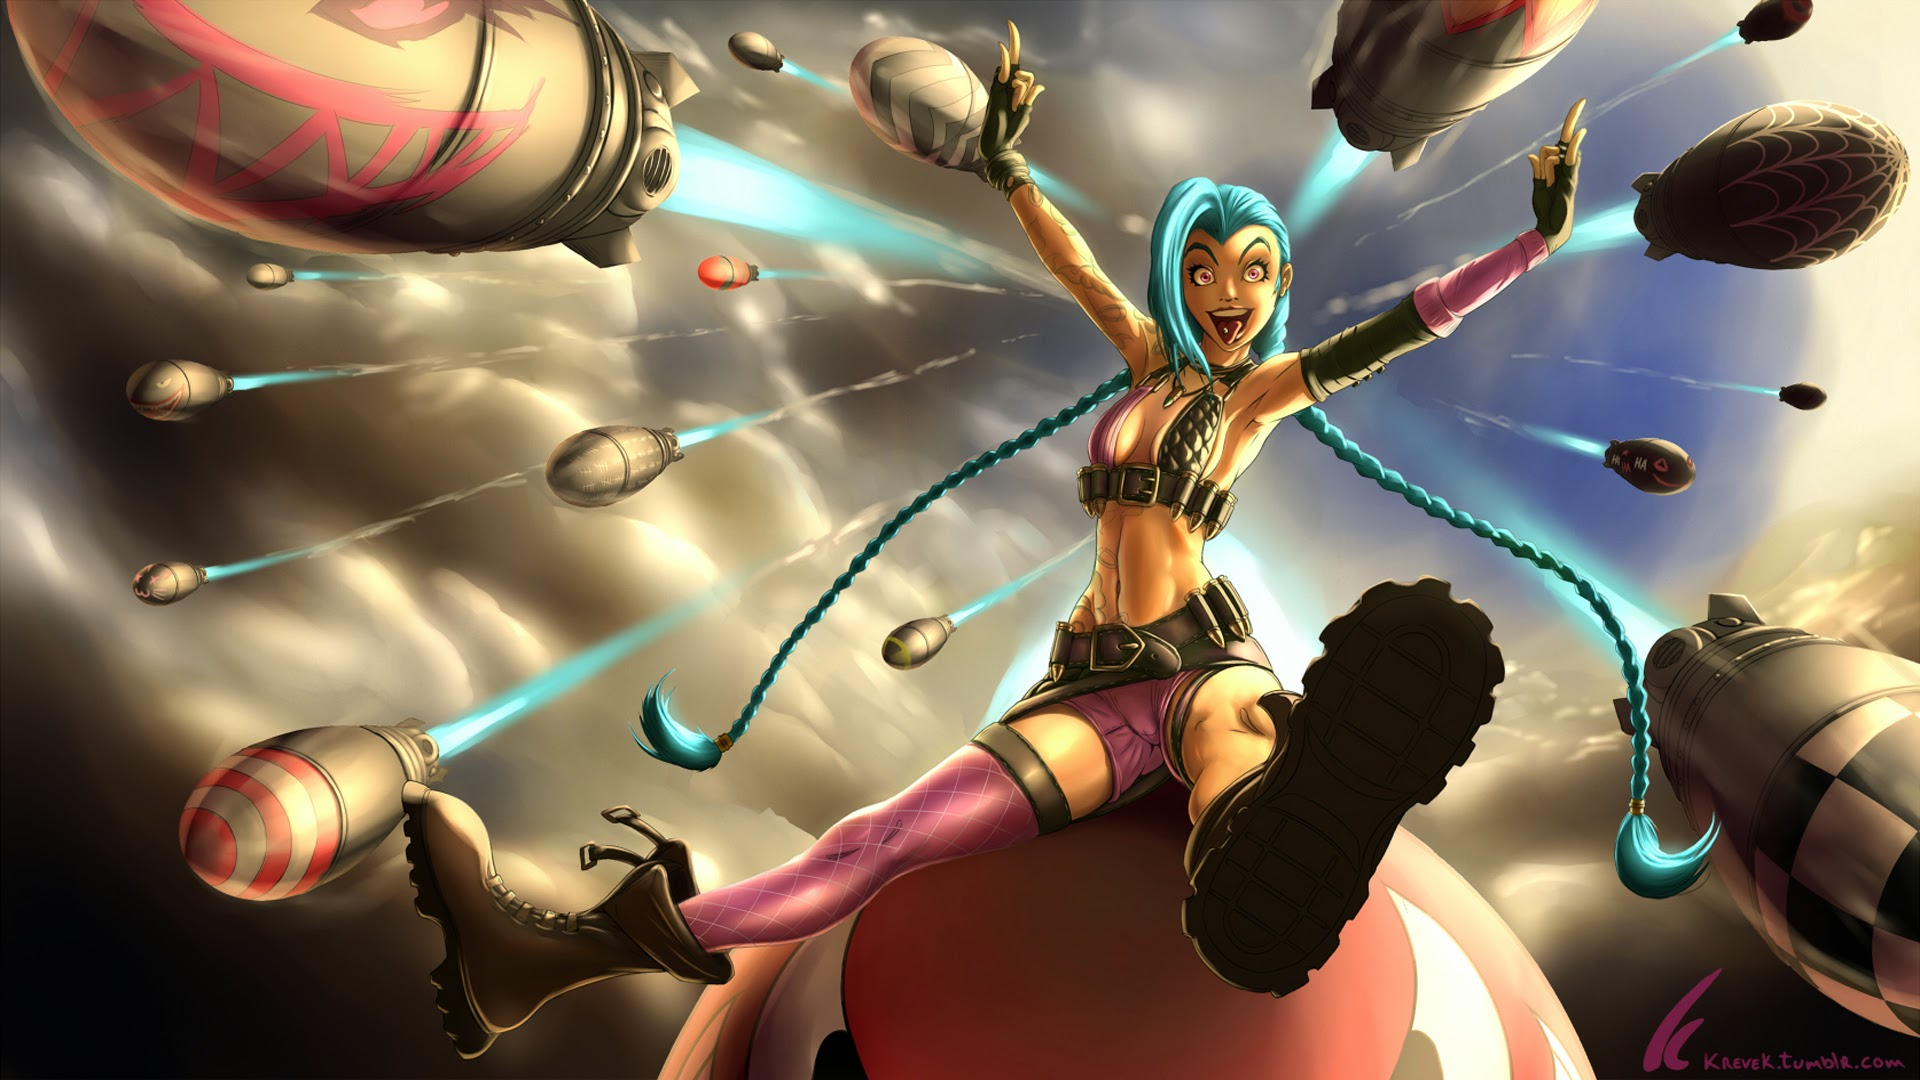 Jinx Wallpaper Hd Jinx Rocket LoL m Wallpaper HD